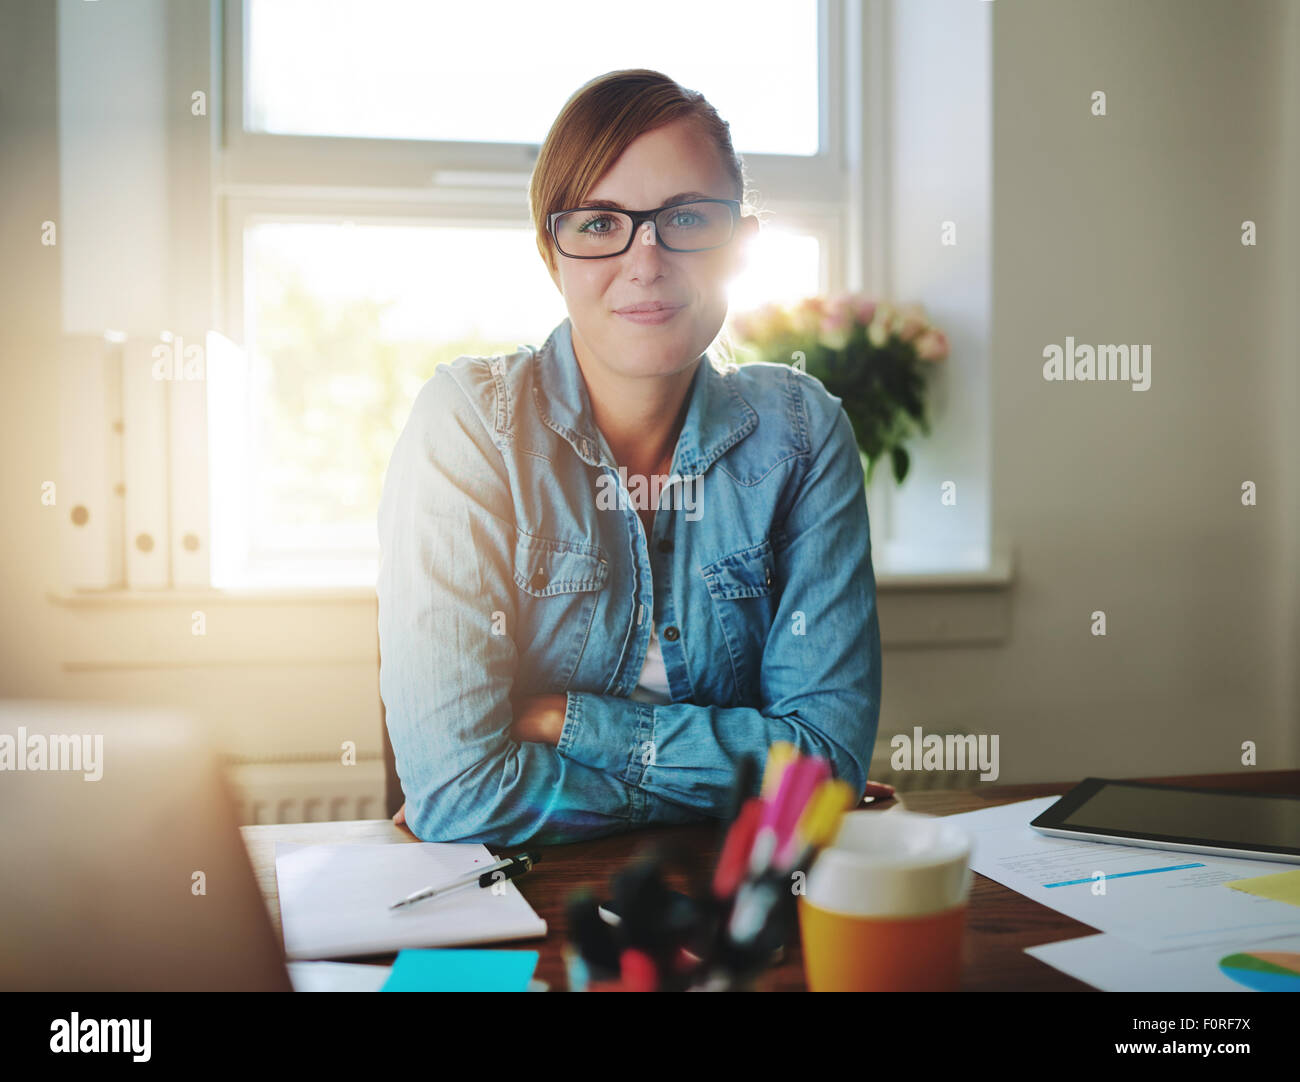 Successful business woman working at the office looking at camera - Stock Image